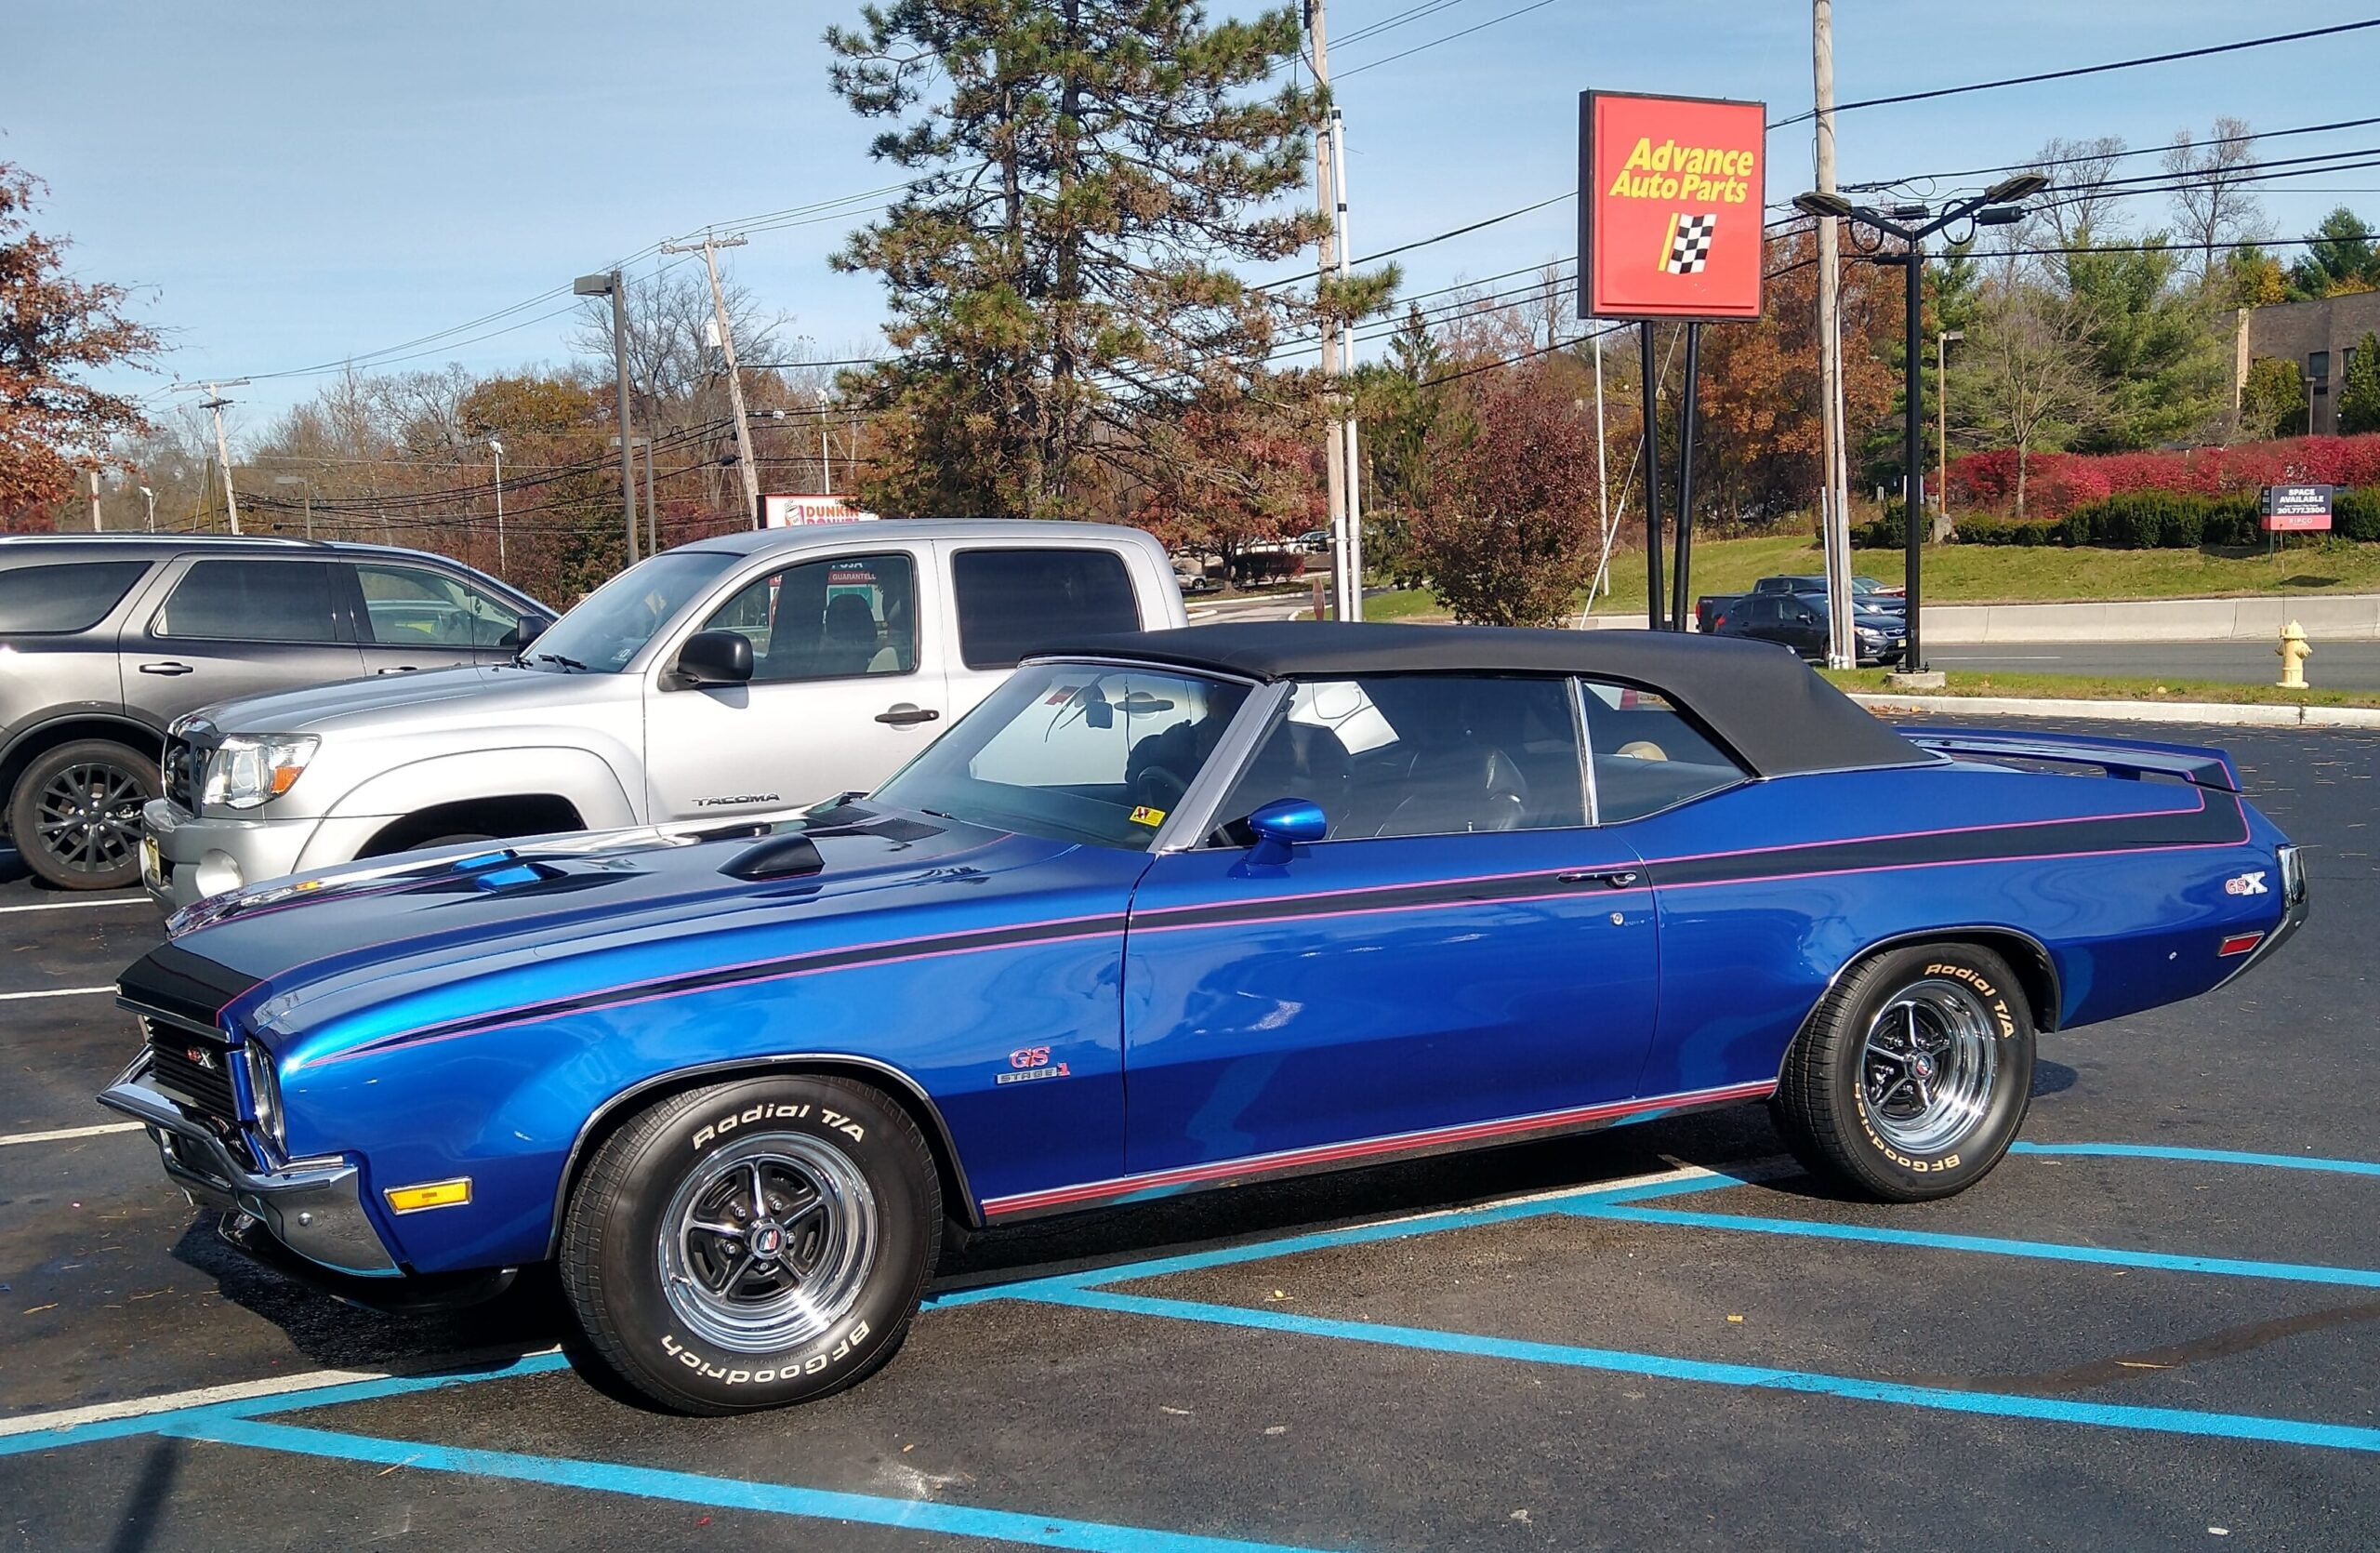 Michael Zedack, Oak Ridge, NJ- 1972 Buick GSX Convertible Tribute